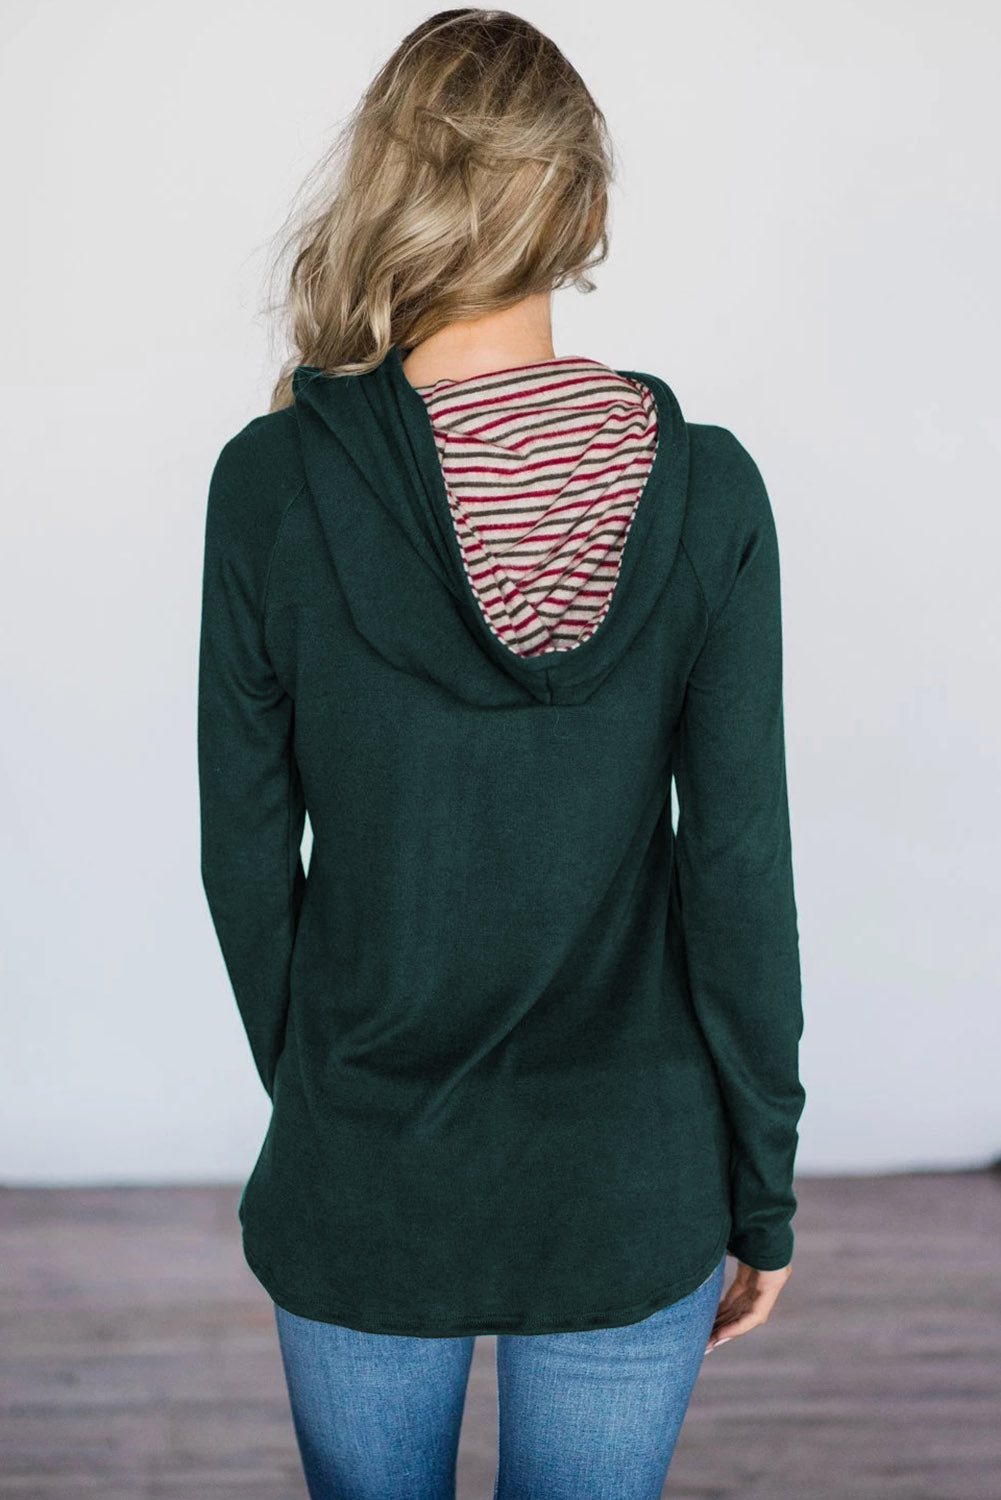 Green Pine&Candy Cane Striped Hoodie Sweatshirts & Hoodies Discount Designer Fashion Clothes Shoes Bags Women Men Kids Children Black Owned Business